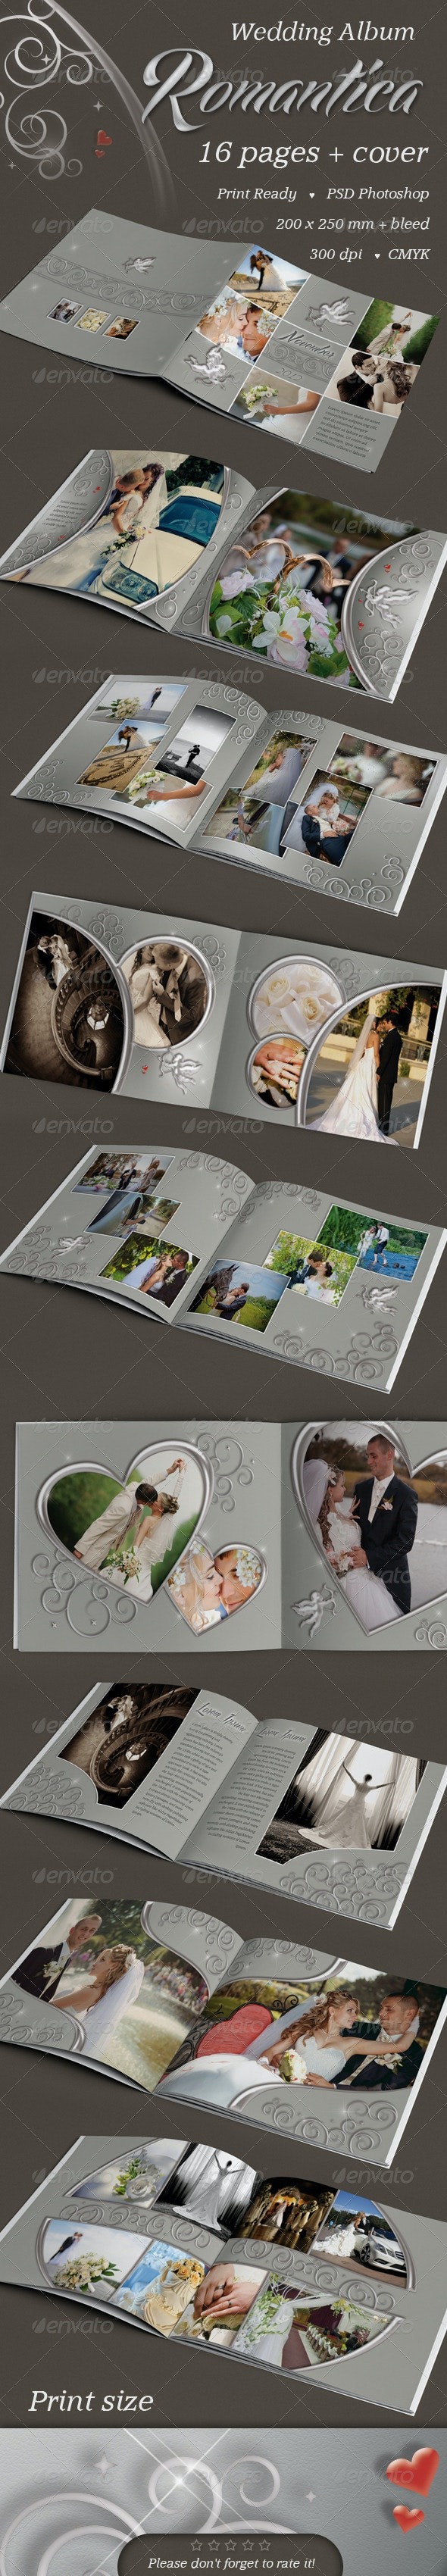 Wedding Album Romantica - Photo Albums Print Templates